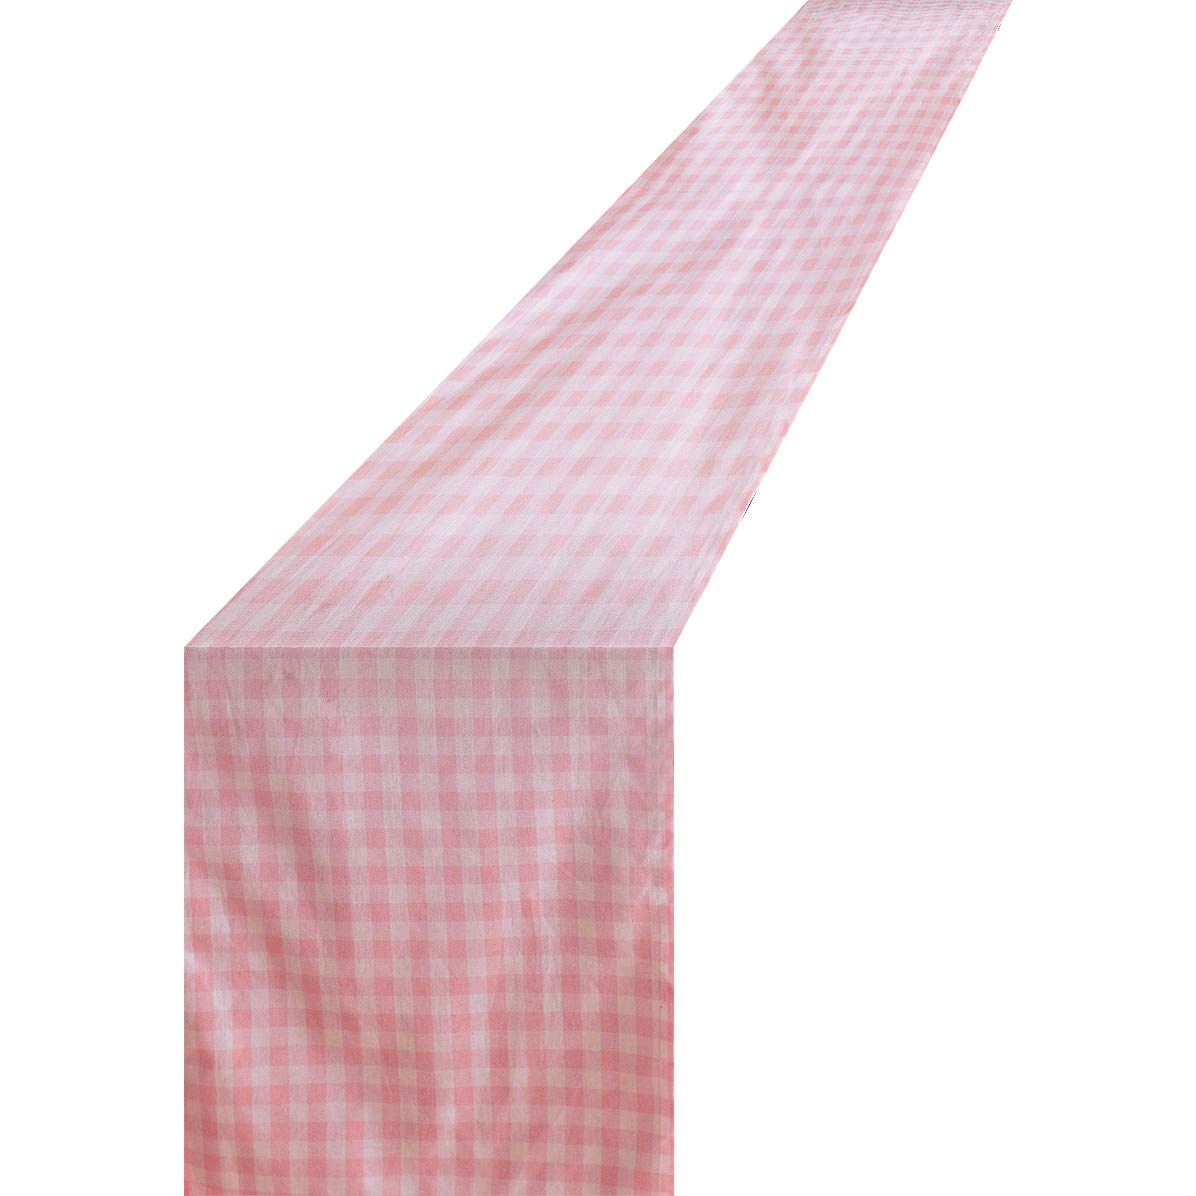 COLORED BIRD Pink Plaid Checkered Table Runner Trendy Modern Plaid Design 100 Cotton Tablerunner Elegant D cor for Indoor Outdoor Events 13 x 100 Pink and White